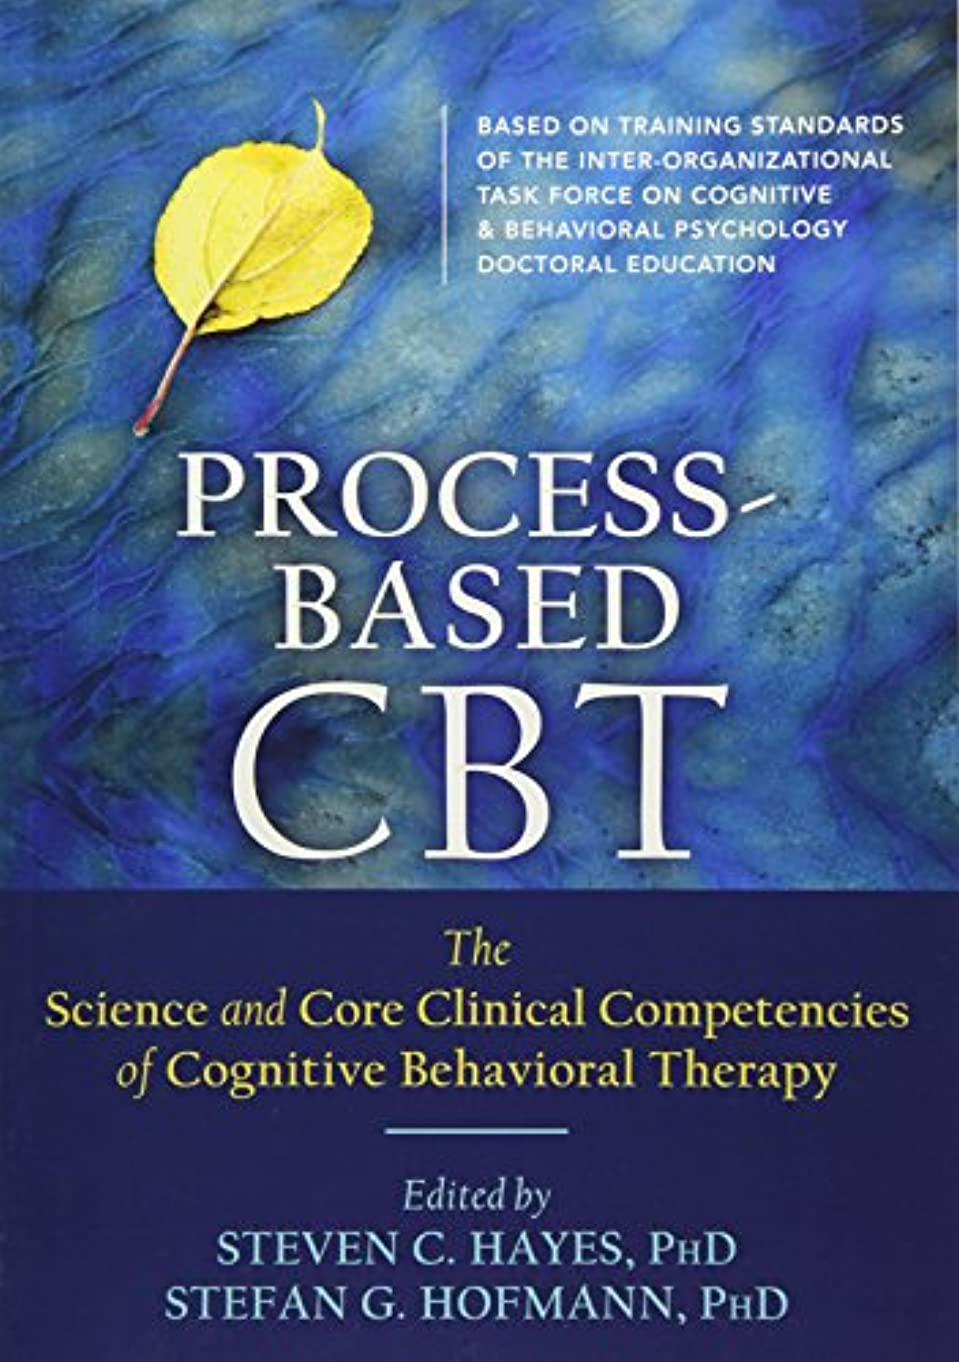 ファシズム販売員付録Process-Based CBT: The Science and Core Clinical Competencies of Cognitive Behavioral Therapy